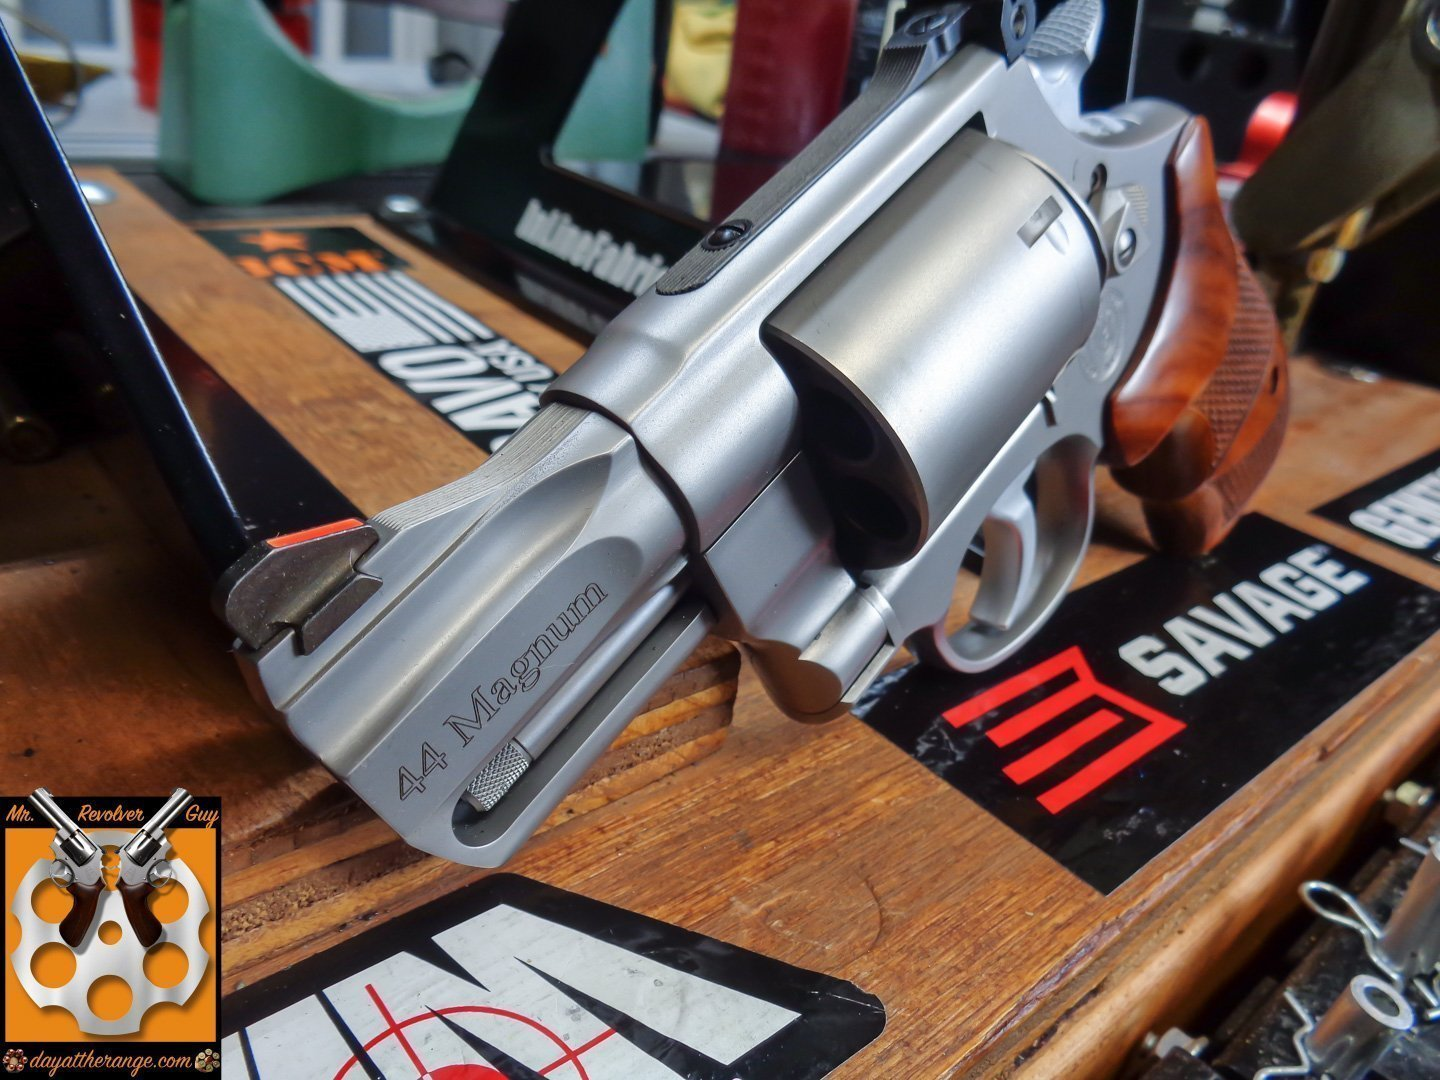 S&W 629 Snub Nose - The Ultimate Revolver For Defensive Carry 265